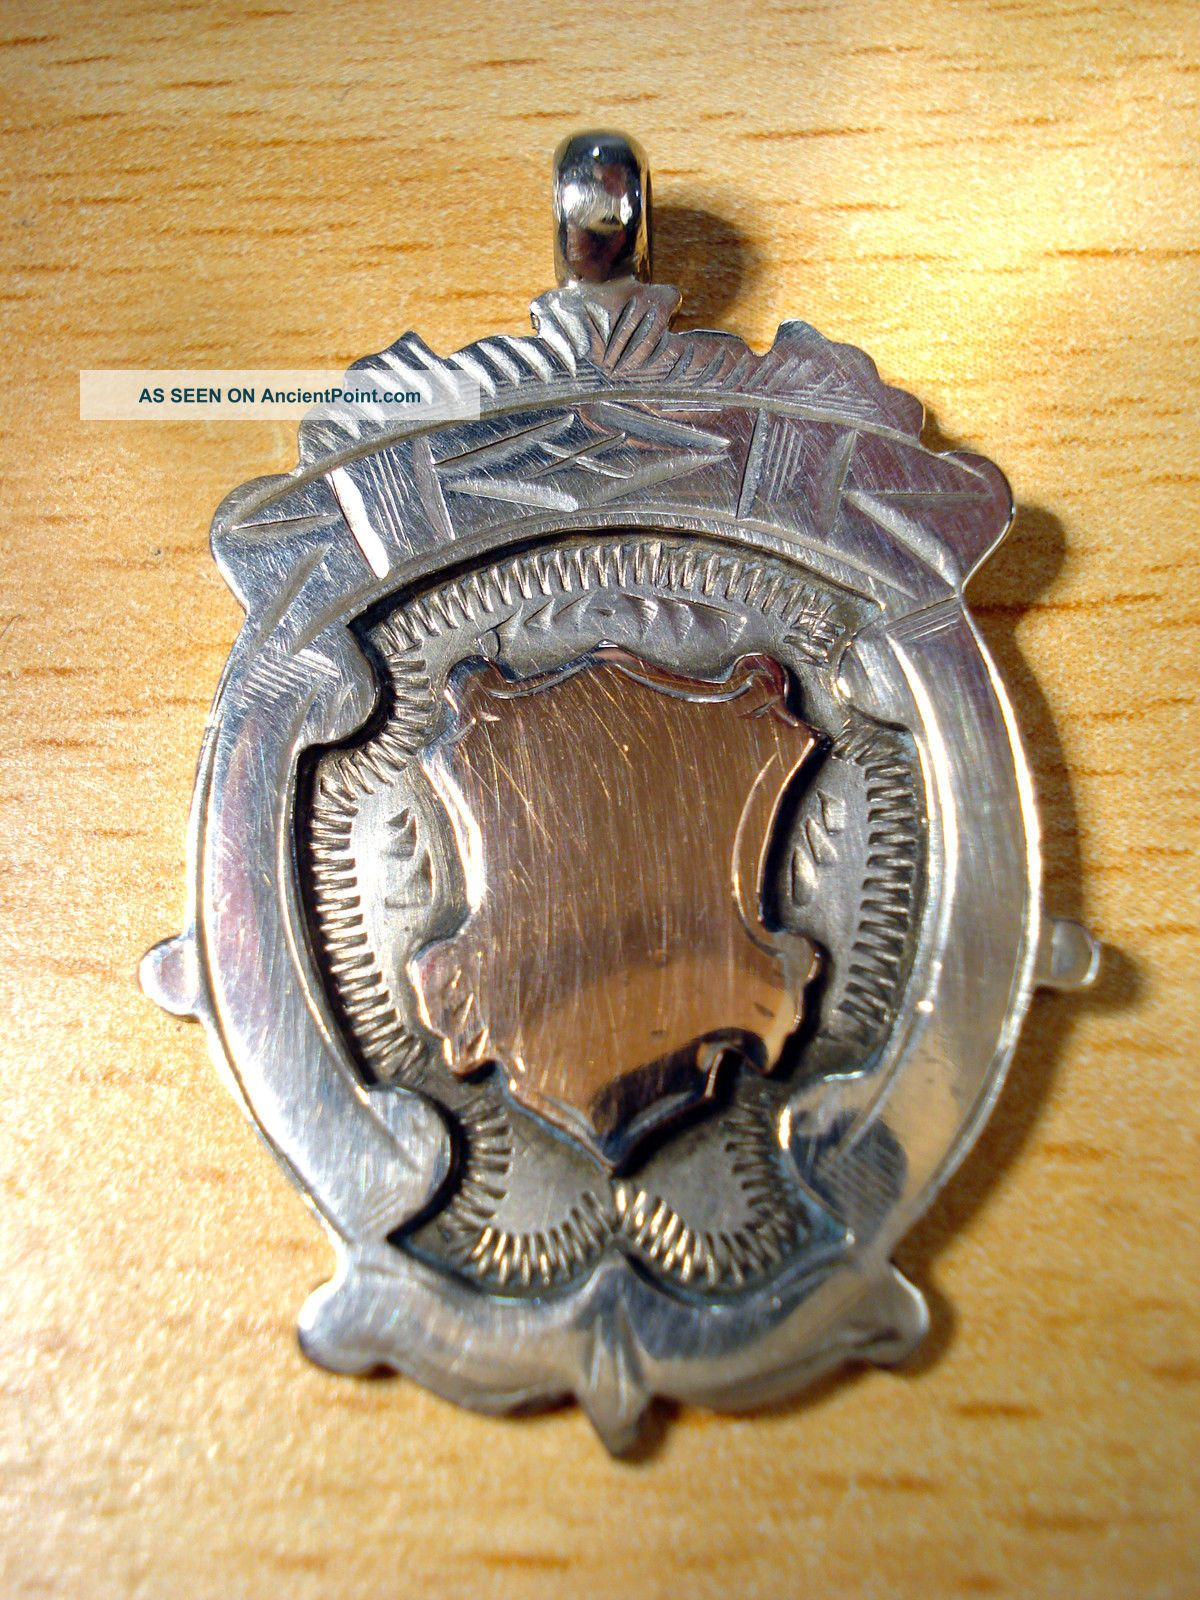 Pendant Rare Antique Vintage Solid Silver Medal 0.  925 Fob 1928 Pocket Watches/ Chains/ Fobs photo